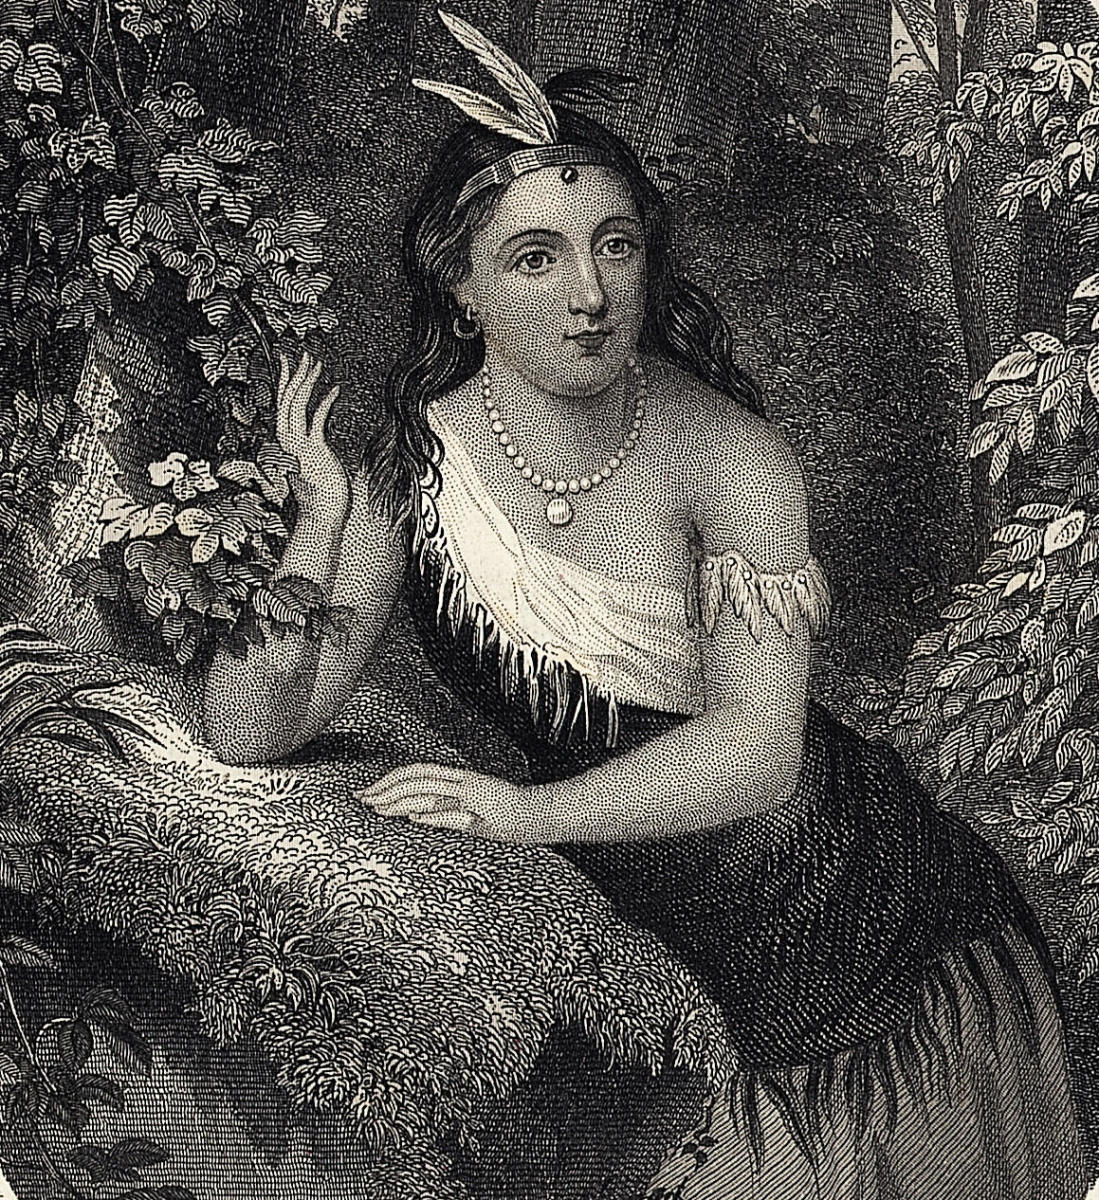 Pocahontas, daughter of Chief Powhatan of Powhatan Indians of Virginia. (Credit: Bettmann Archive/Getty Images)